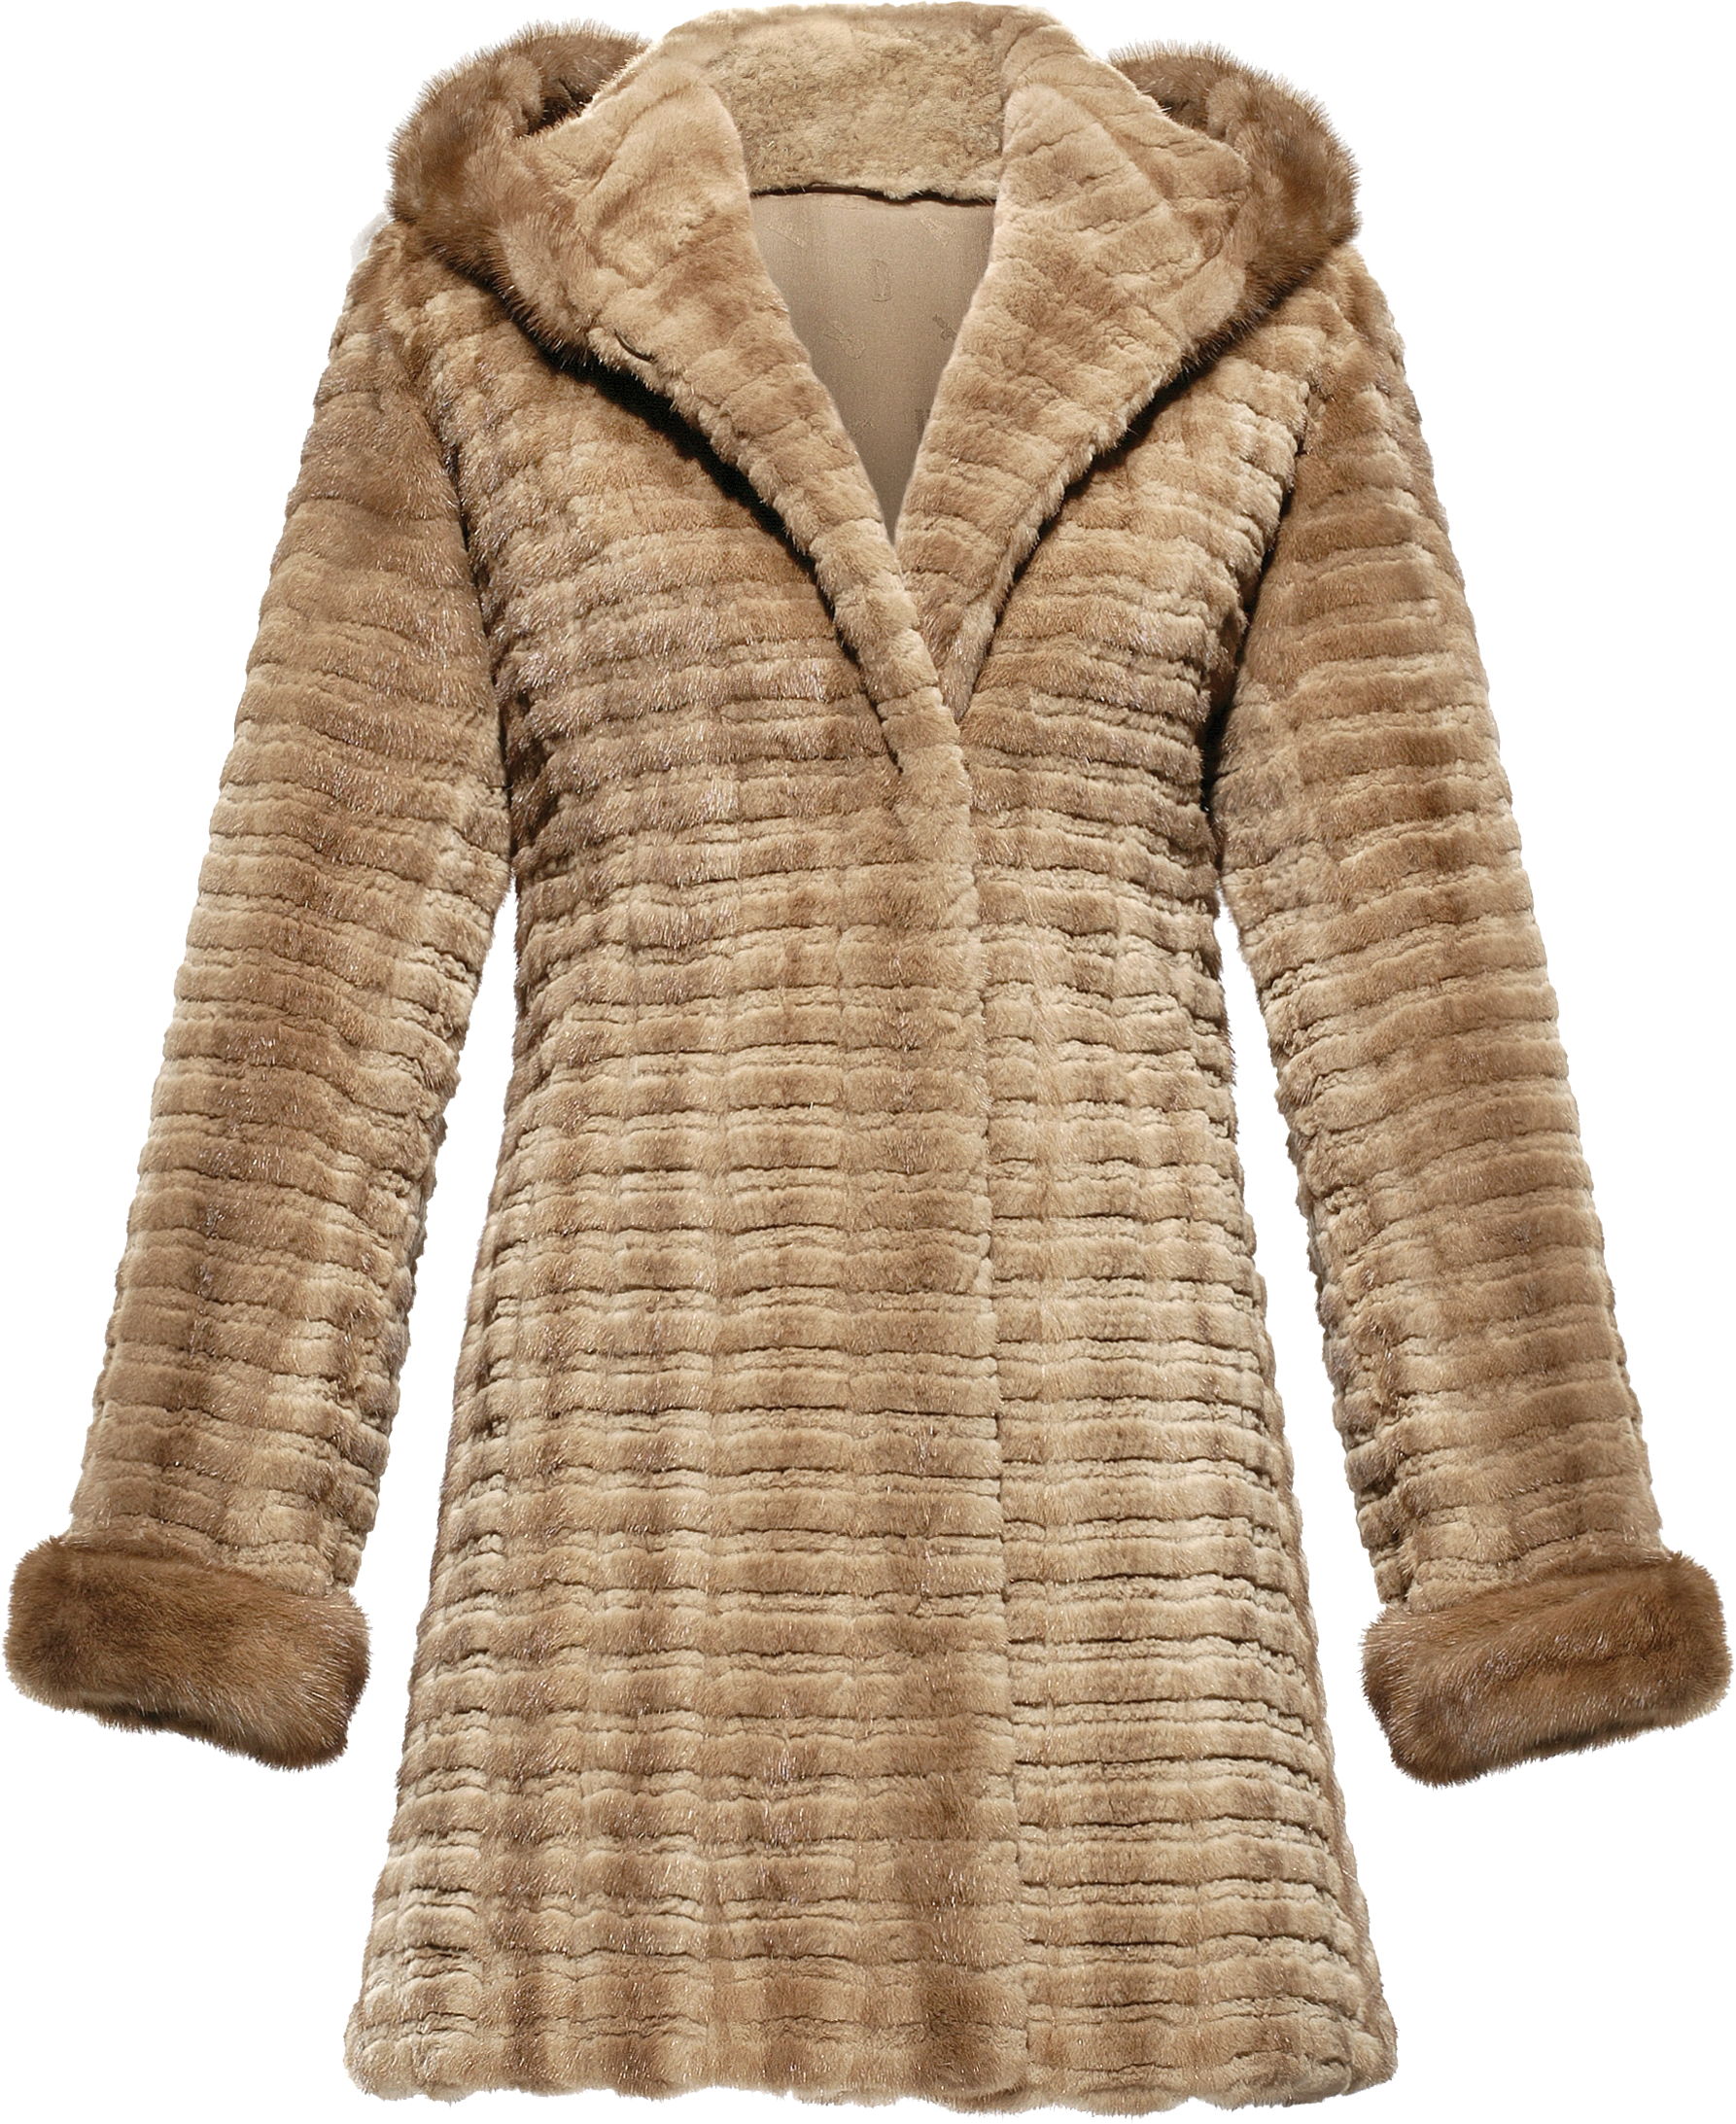 Central Parka Fur Coat